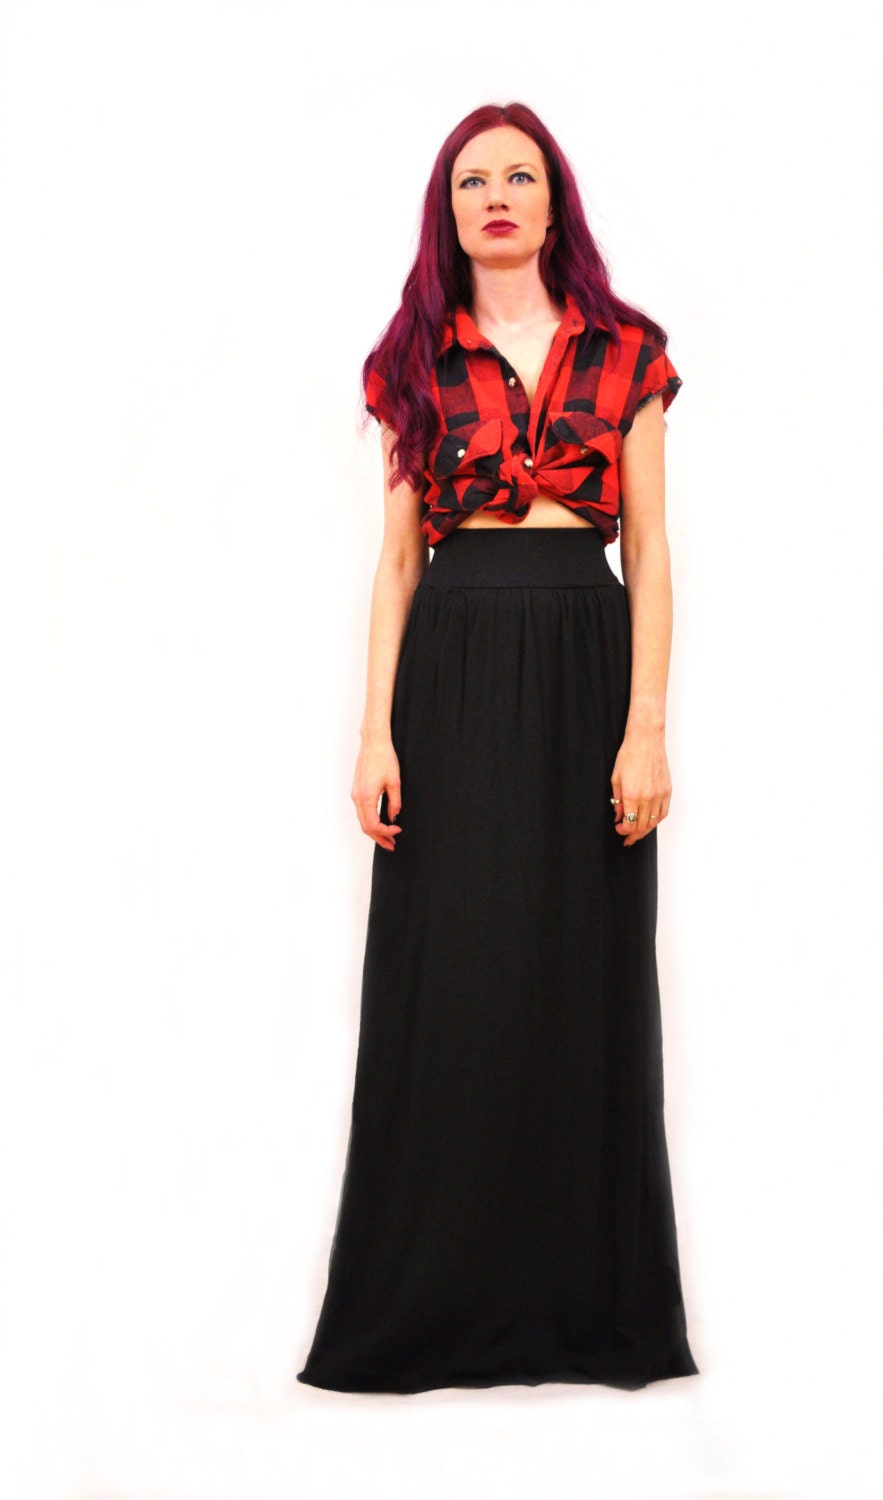 High waisted maxi skirt outfit pictures - Skirts Shop All Women's ...